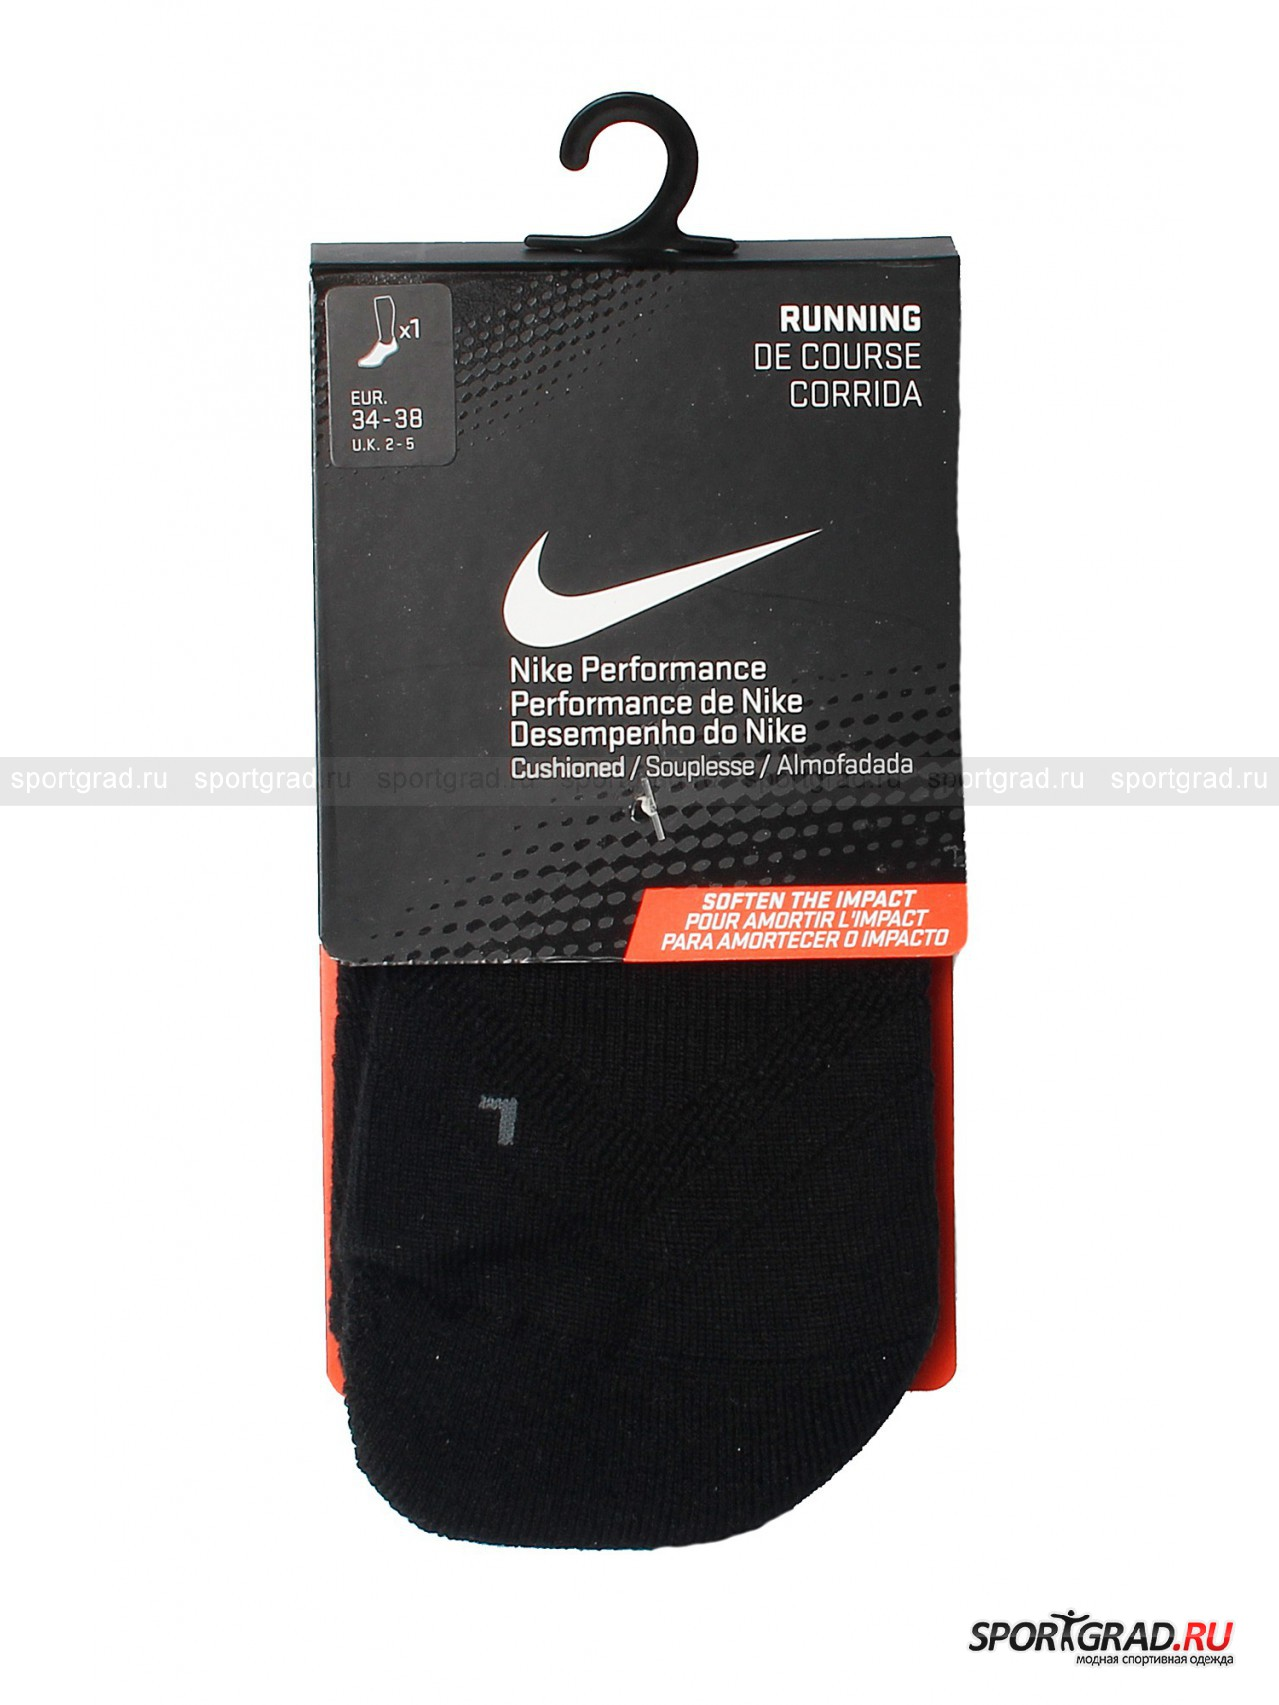 Носки FIT-DRY RUNNING CUSHION NIKE